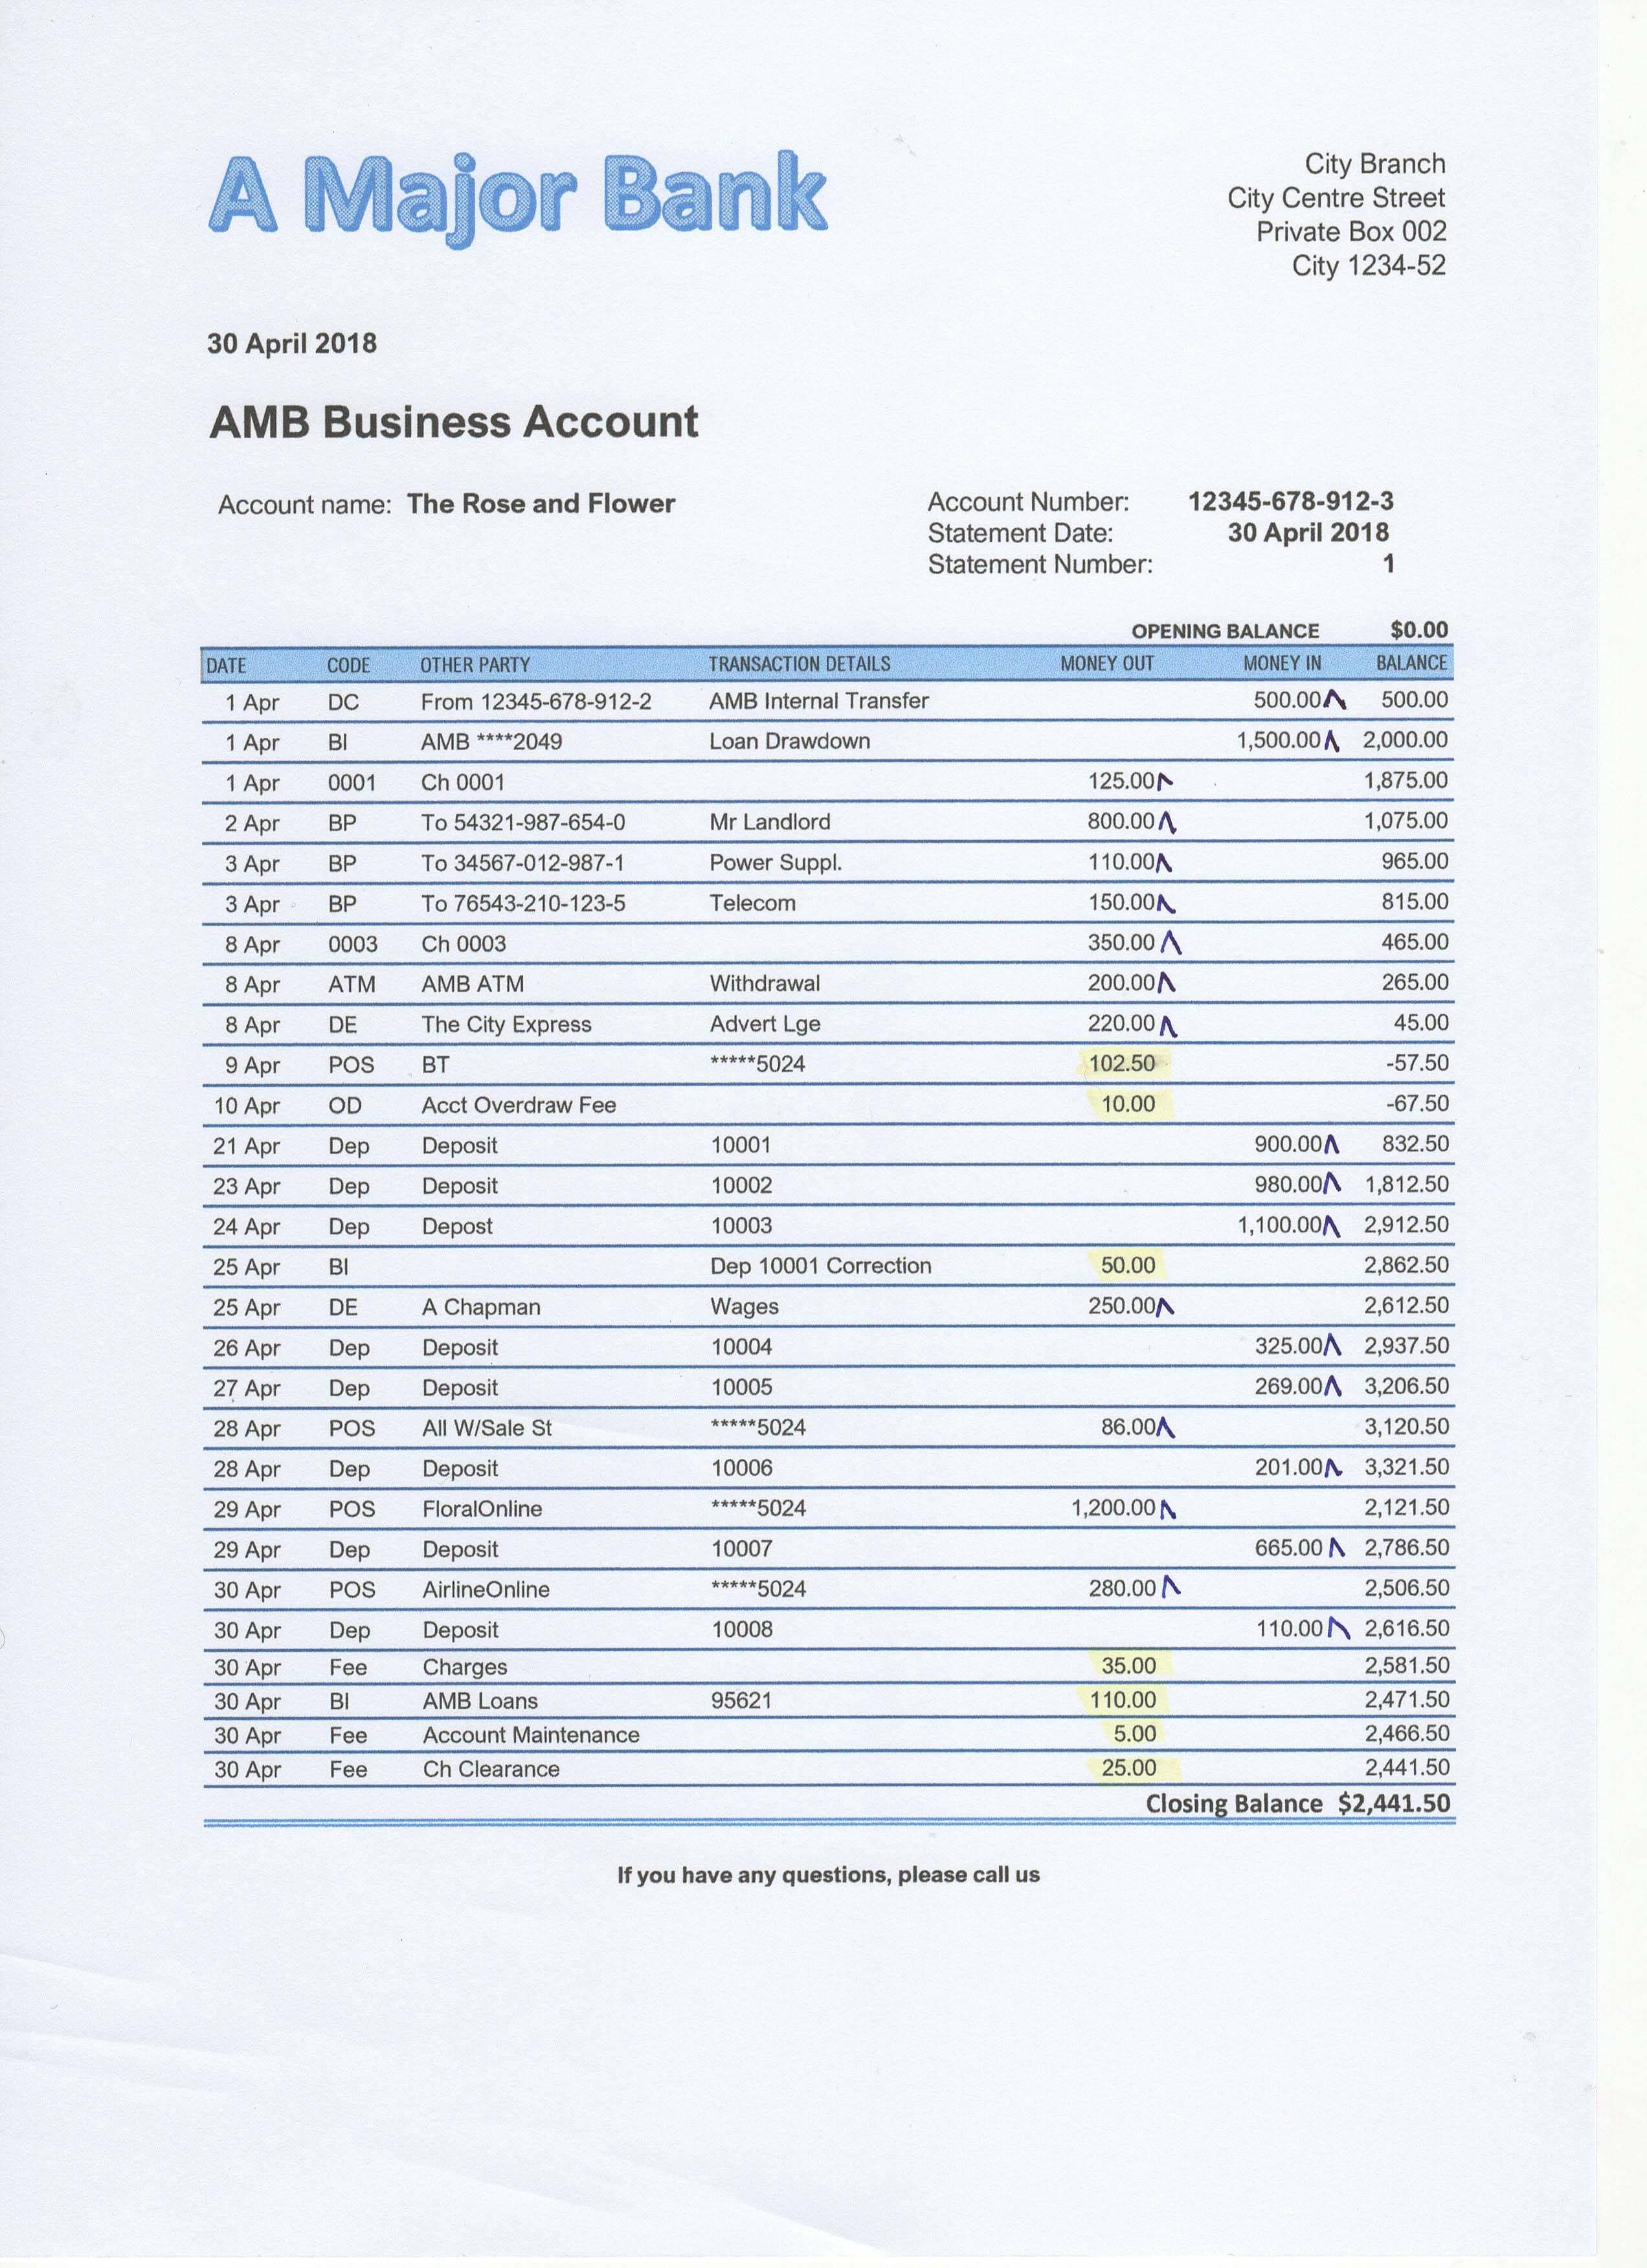 Bank Statement Reconciliation Template Beautiful Bank